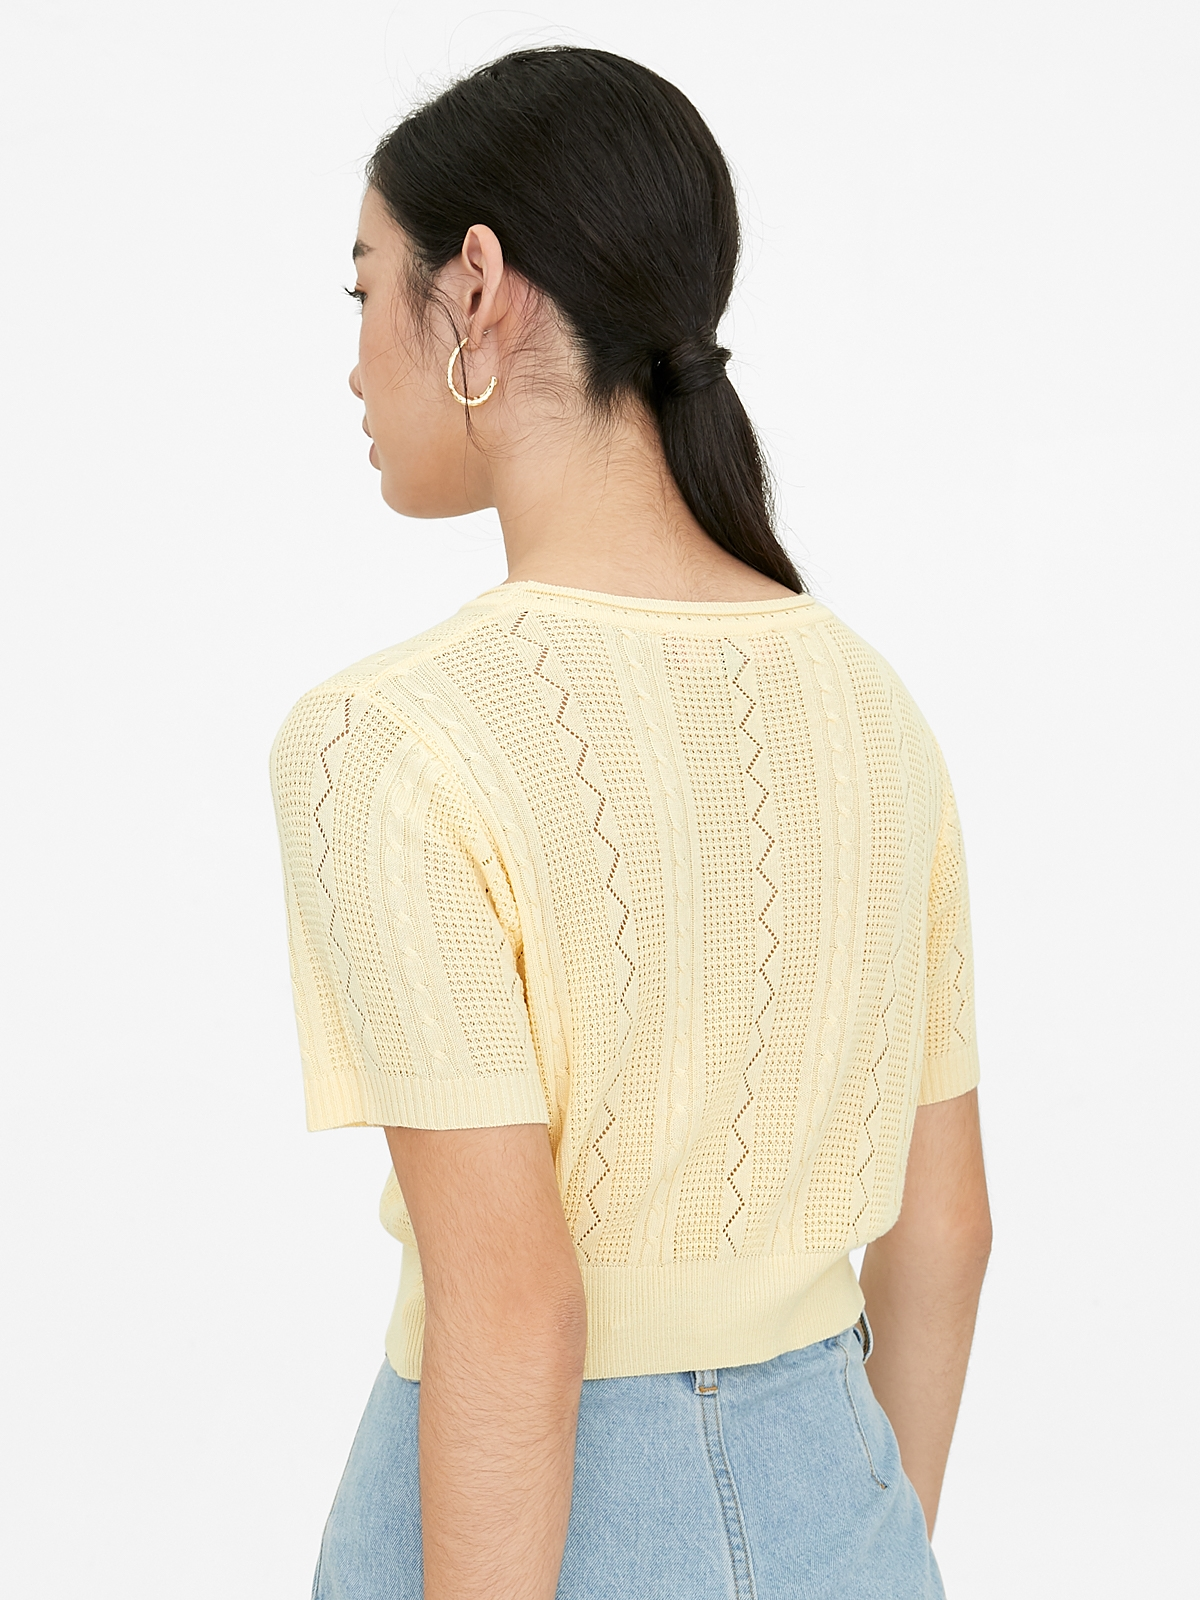 Knitted Crop Top Yellow